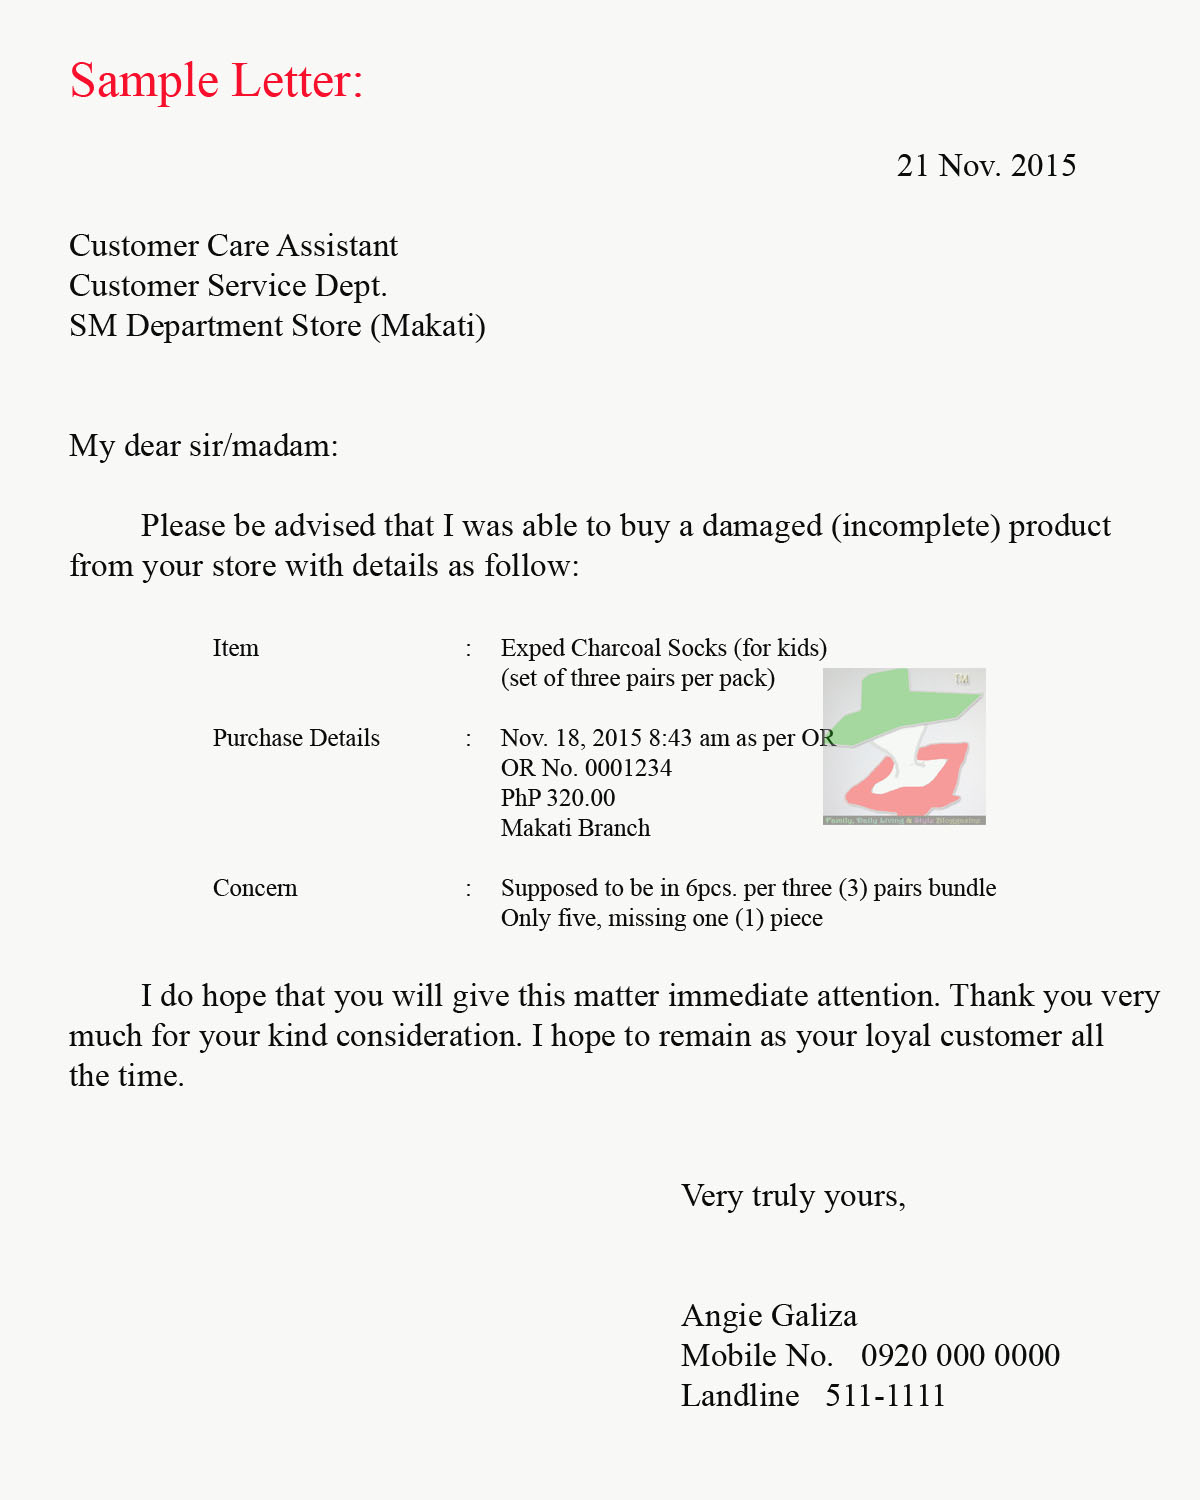 How to write a customer complaint letter complaint letter consumer sample complaint letter bank manager 93kb sample complaint letter complaint letter sample employee for letter of customer spiritdancerdesigns Choice Image